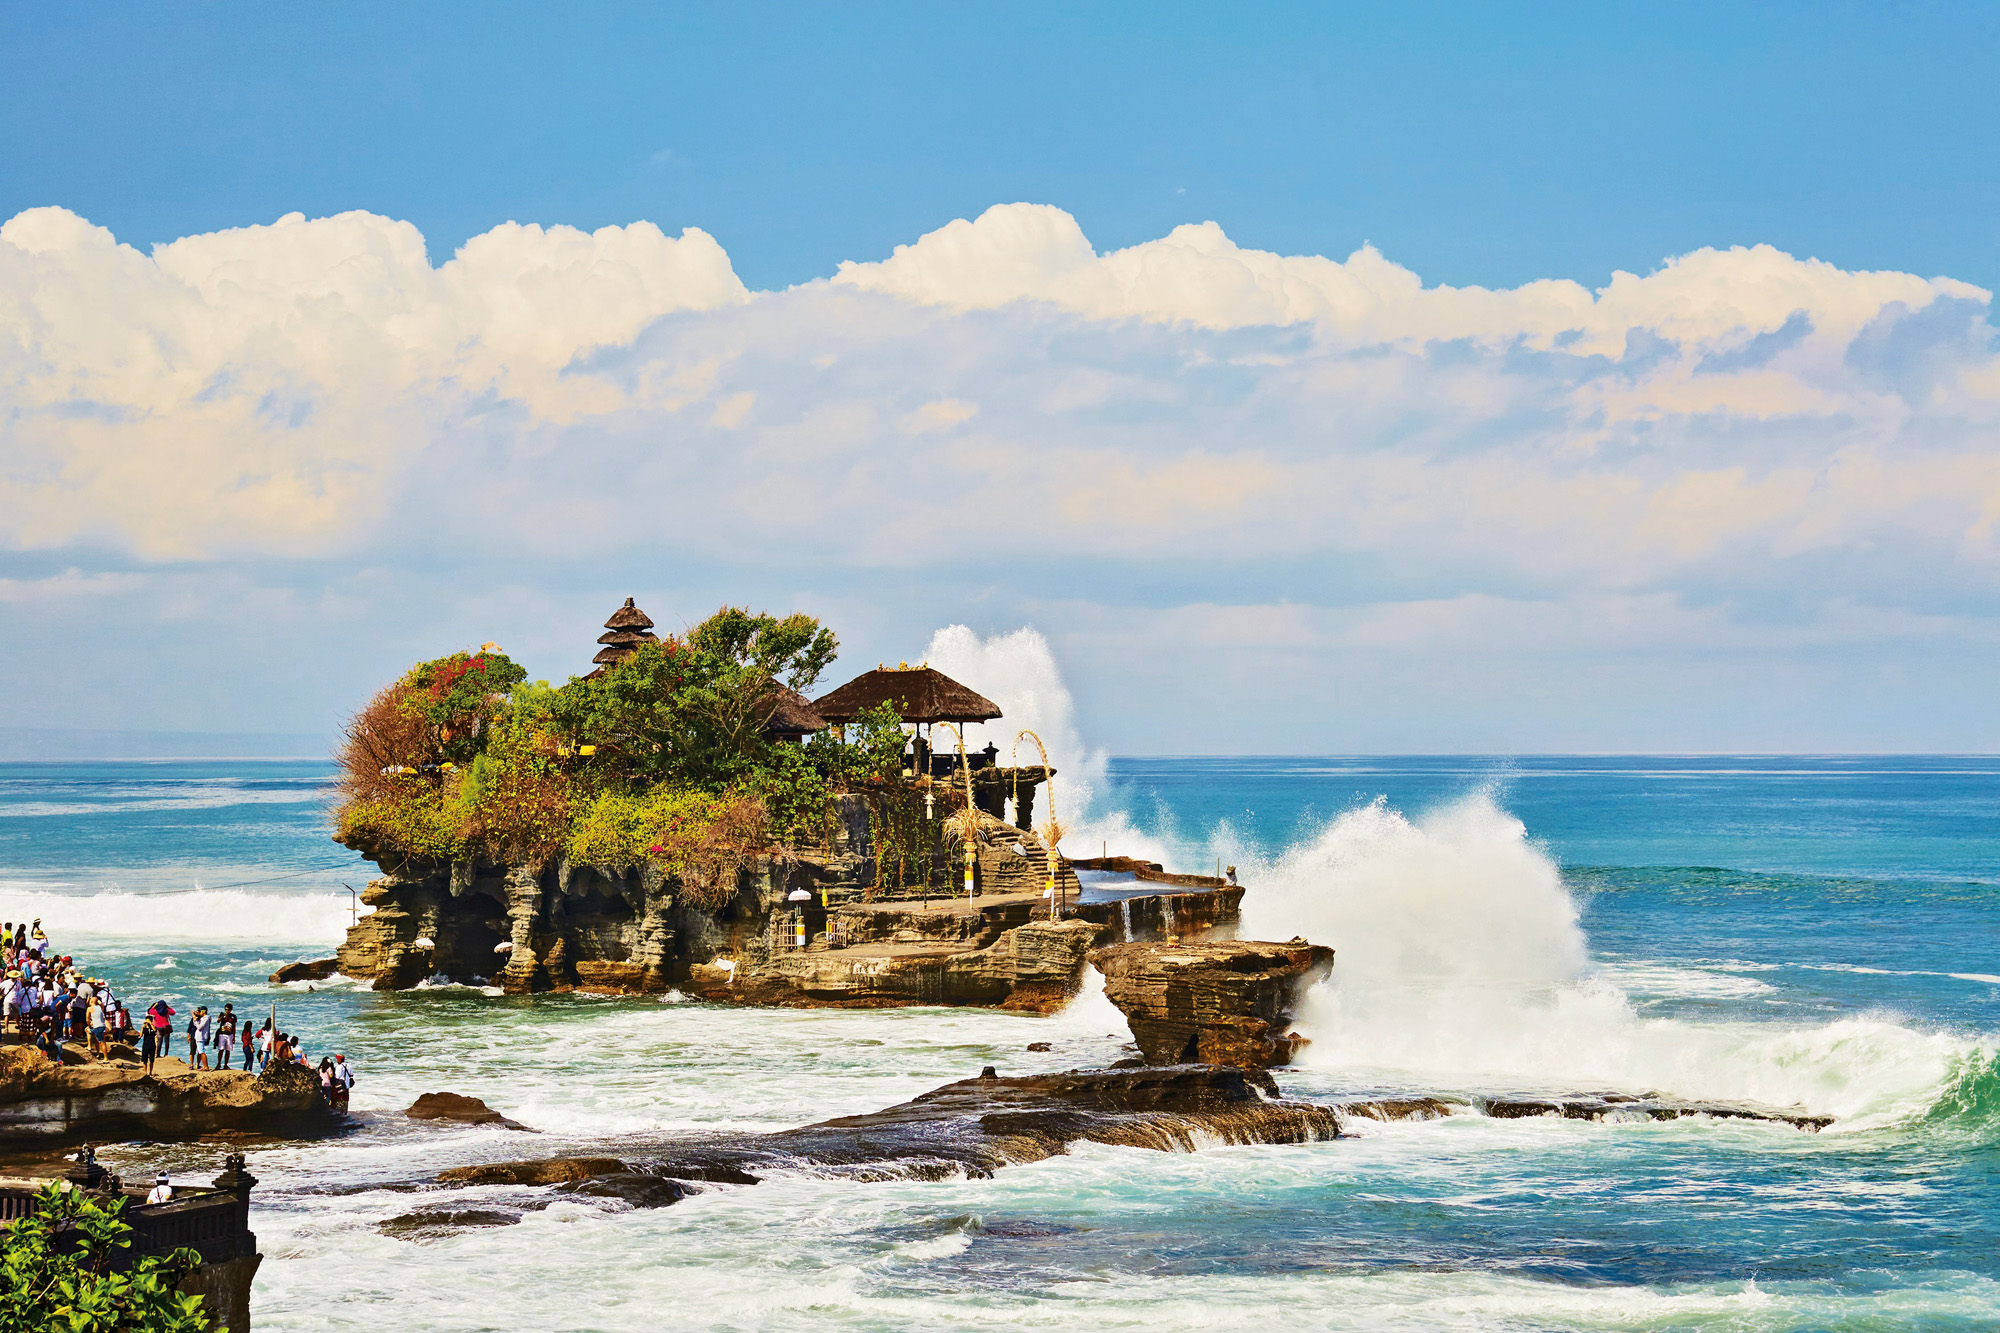 WTG - Tanah Lot Temple (1)